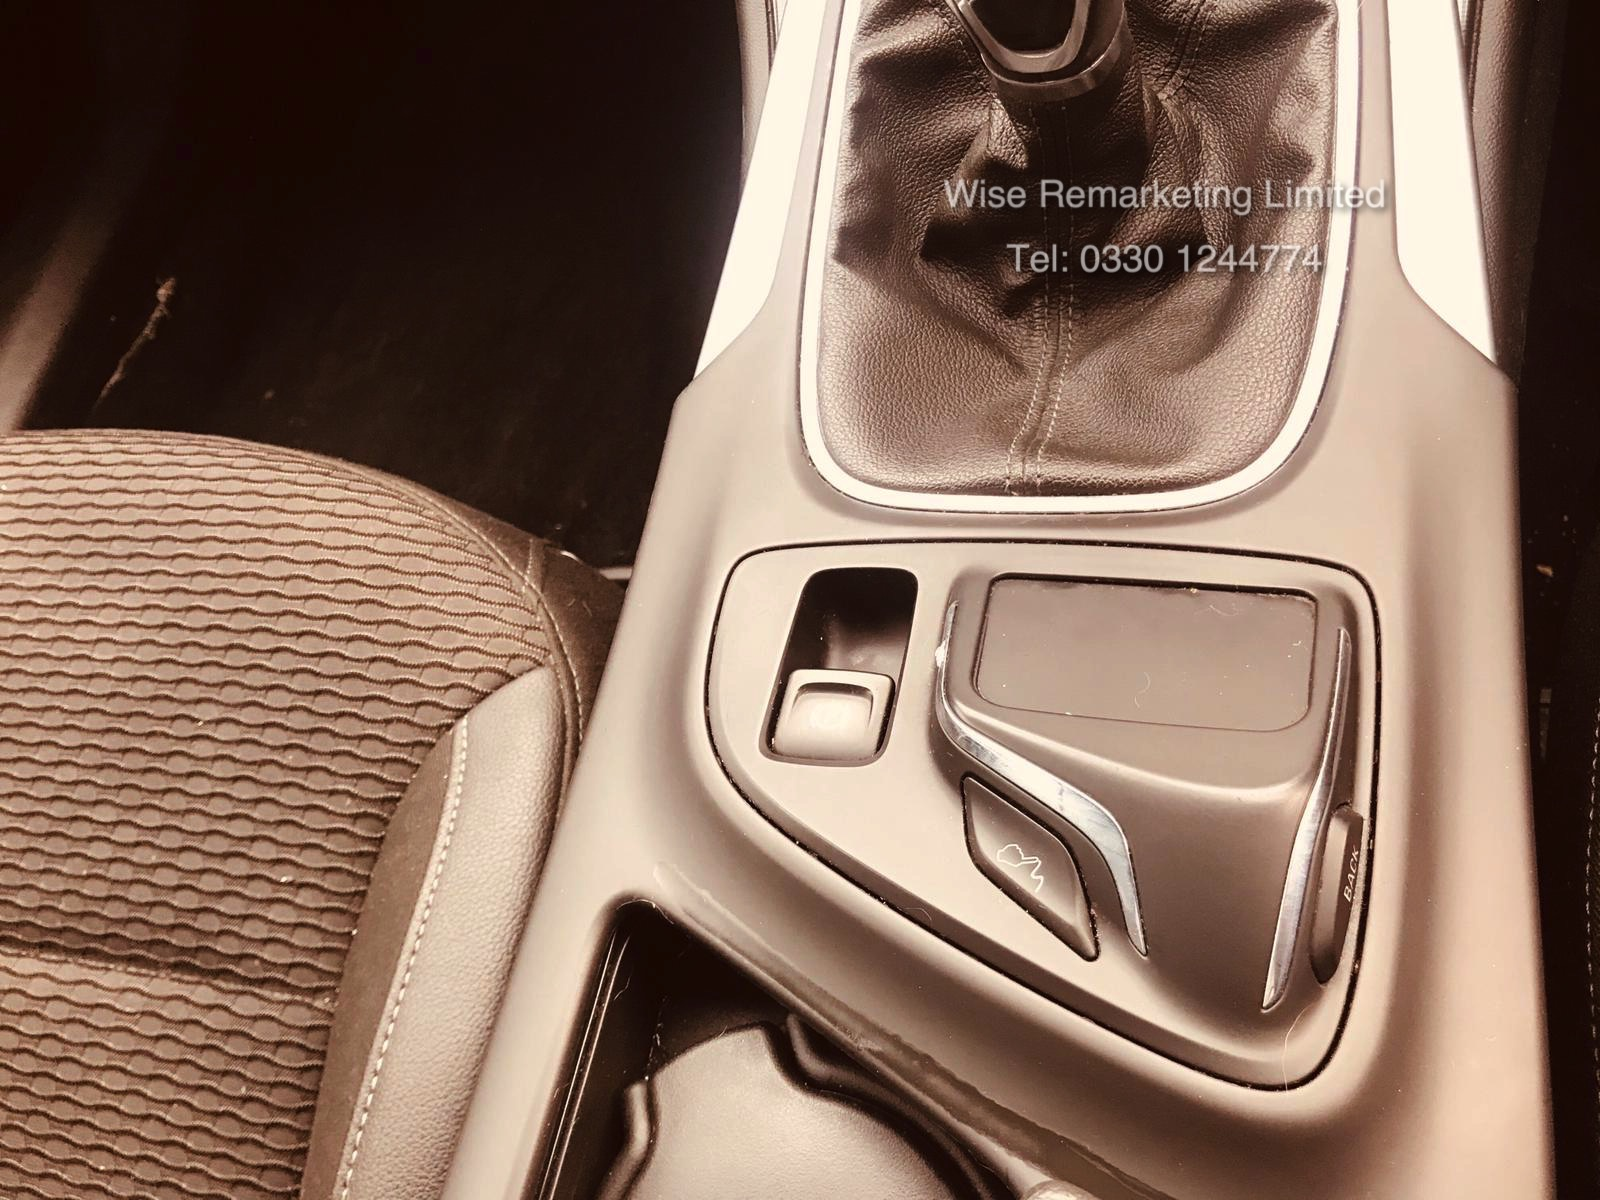 (RESERVE MET) Vauxhall Insignia 2.0 CDTI Techline 6 Speed - 2014 Model - Part Leather - - Image 12 of 20